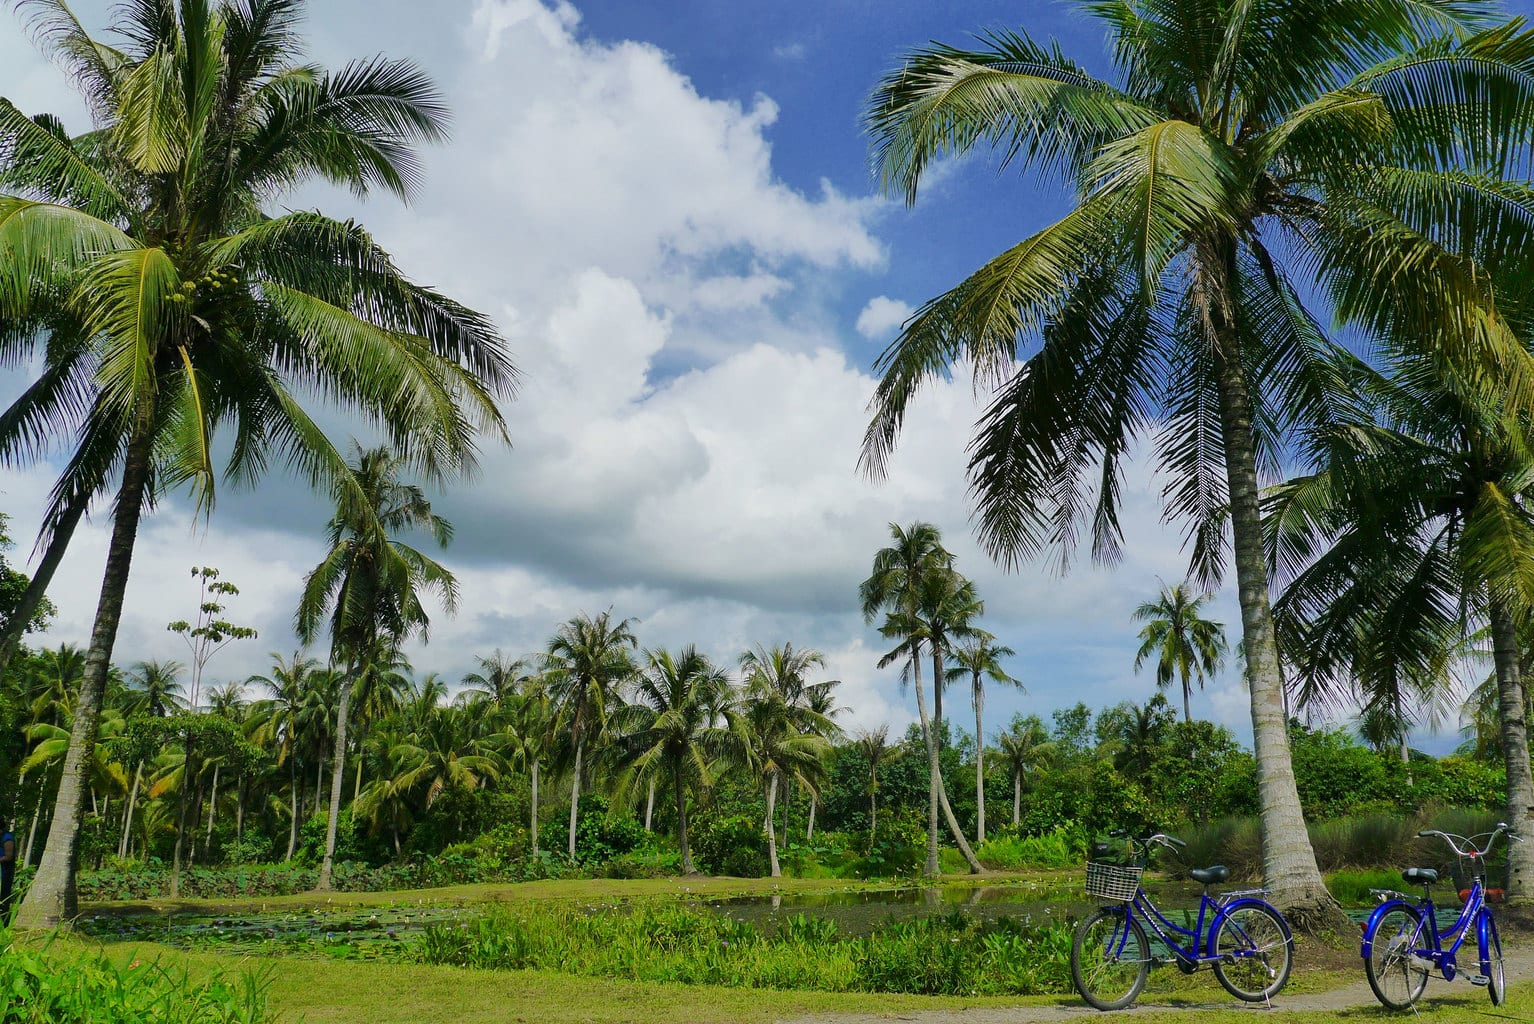 Getting around by bike on Pulau Ubin